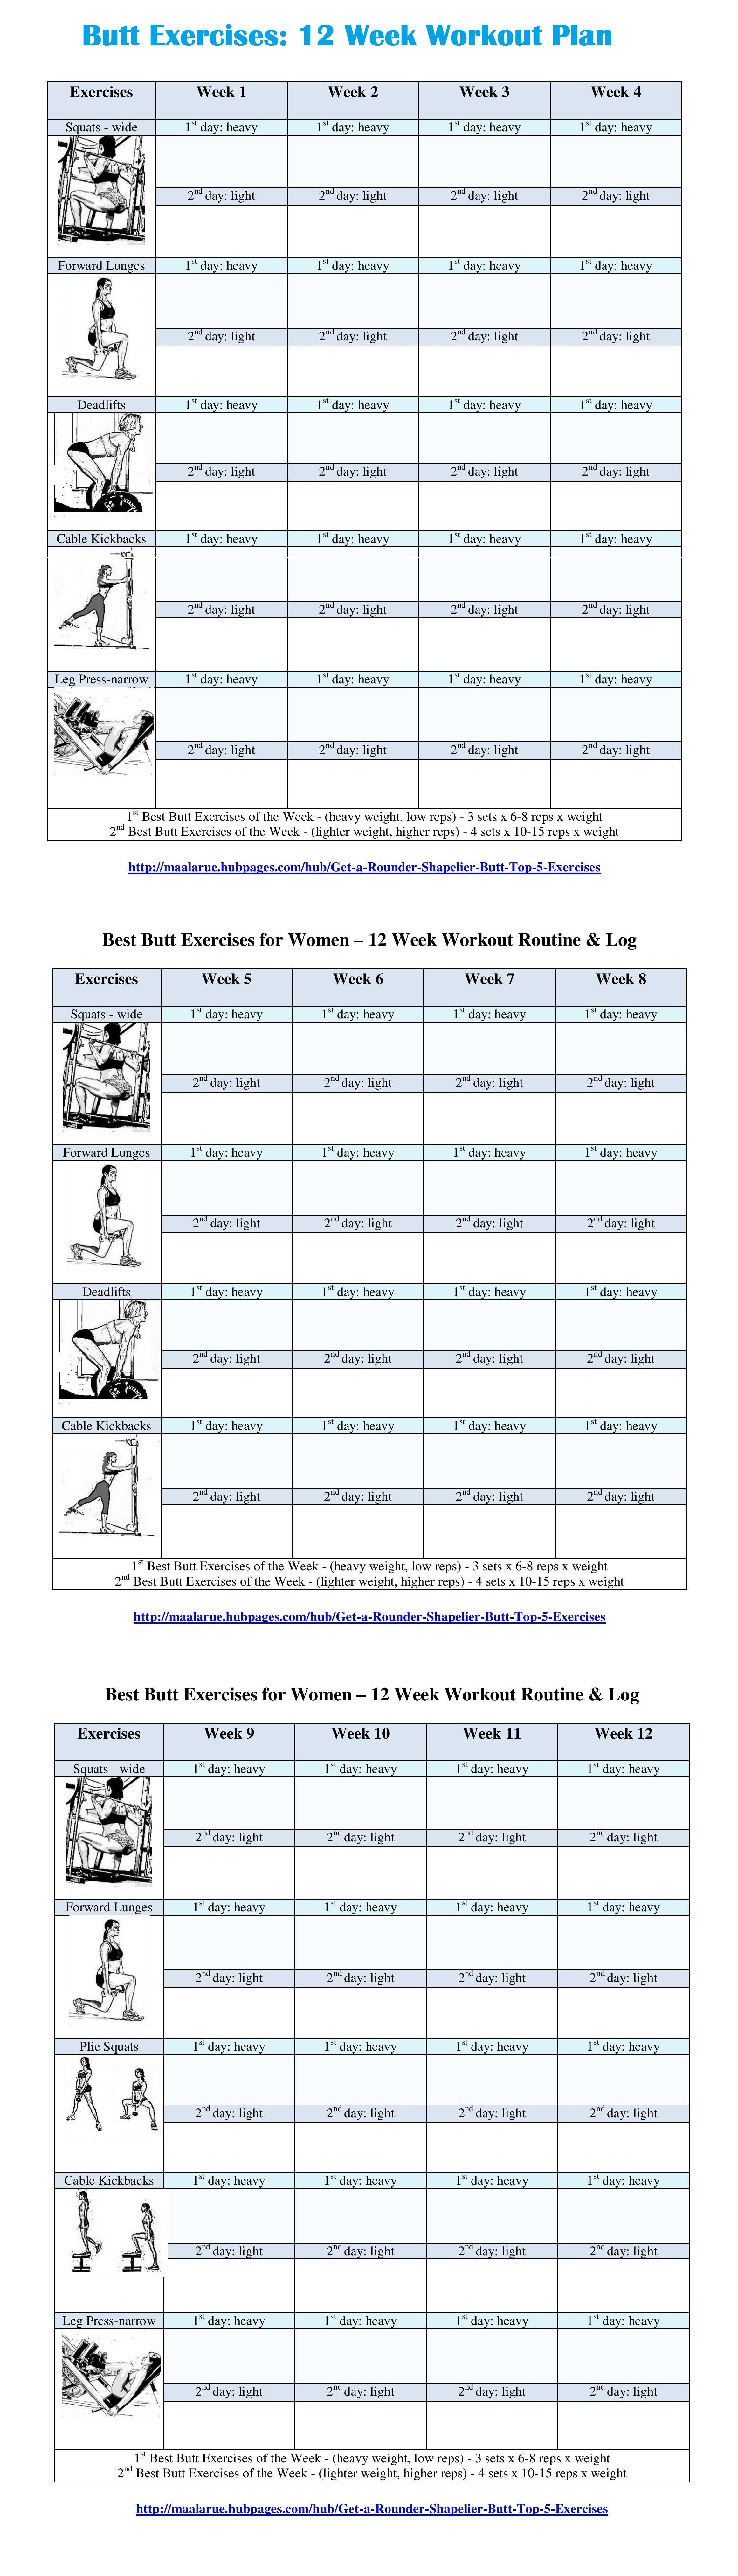 week butt exercise routine free pdf for download or print is also available at best fitness images workouts functional training rh pinterest